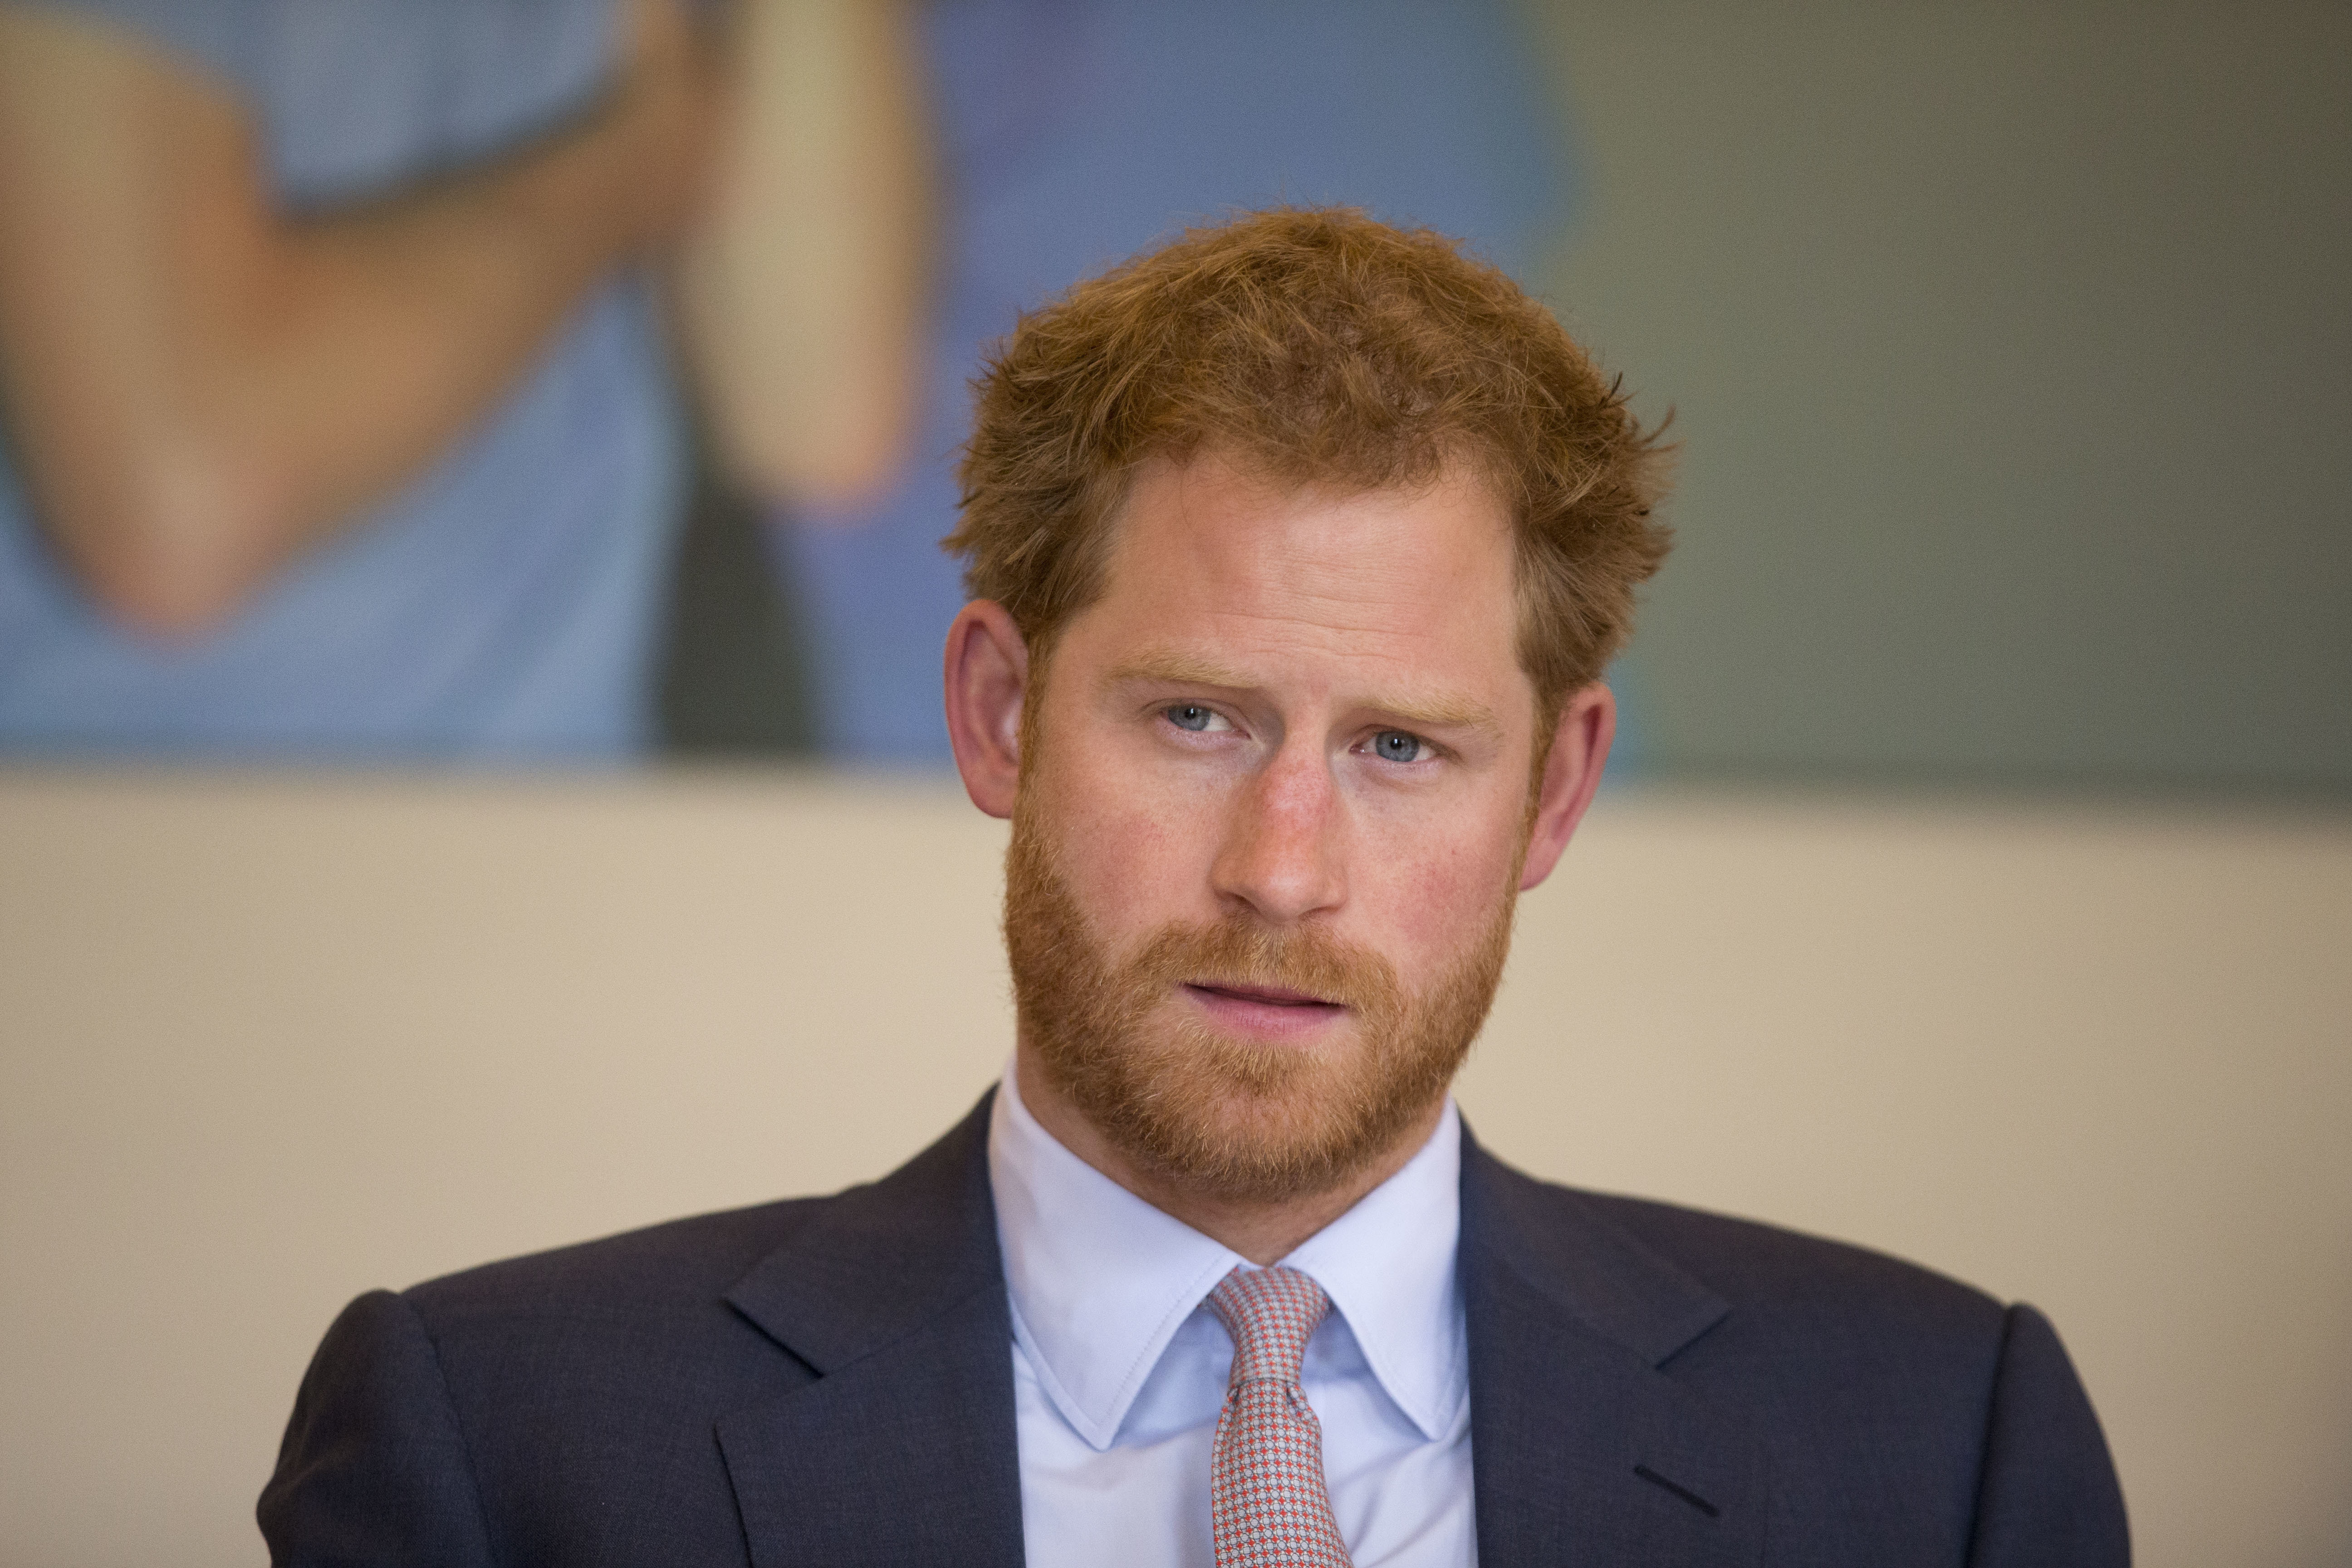 Prince Harry takes part in a round table discussion with HIV doctors as part of his desire to raise public awareness in the fight against HIV and AIDS both internationally and in the UK at King's College Hospital on July 7, 2016 in London, England.